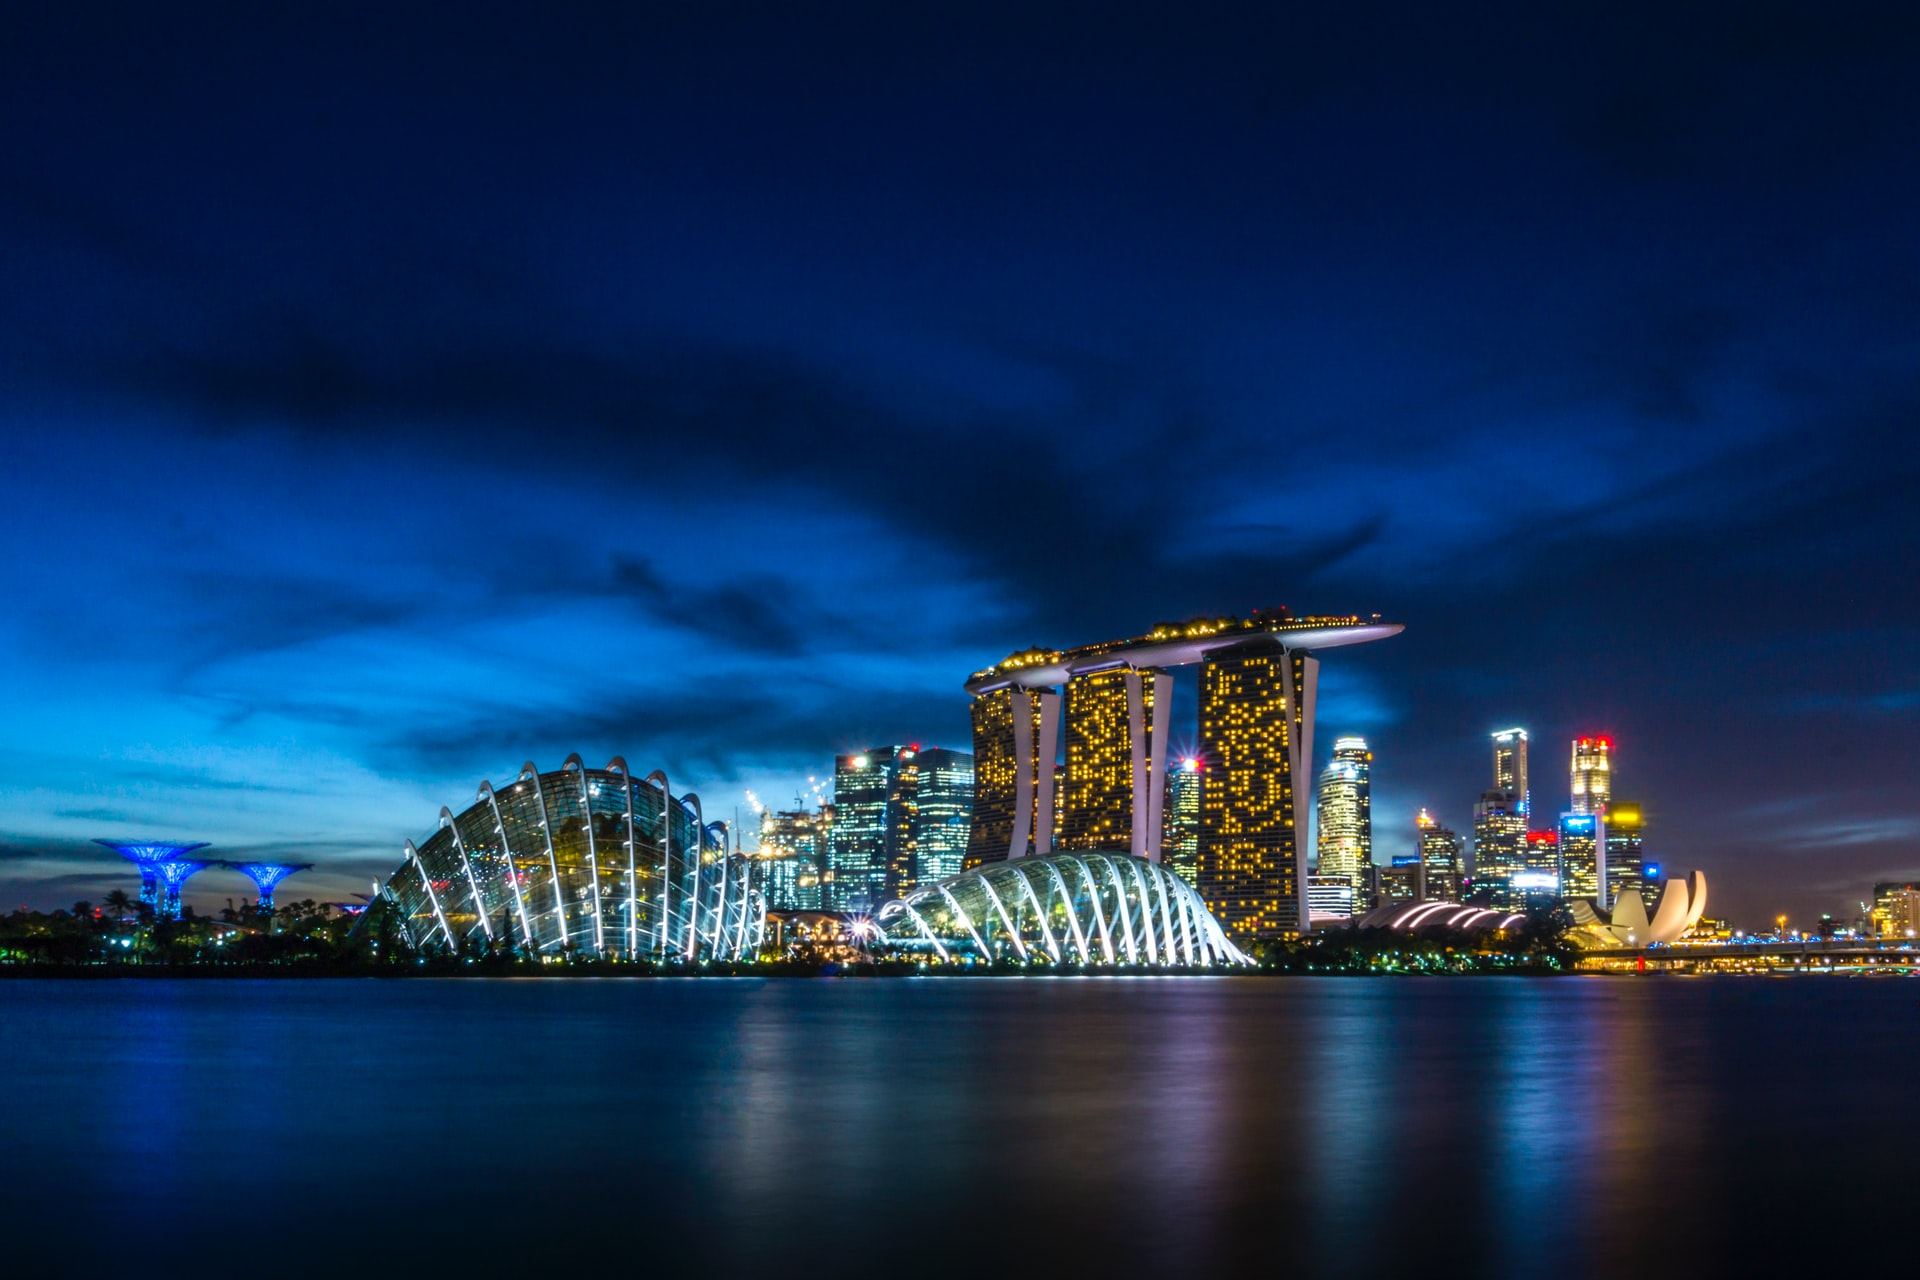 Singapore Legal Update - The Insolvency, Restructuring and Dissolution Act: An Overview